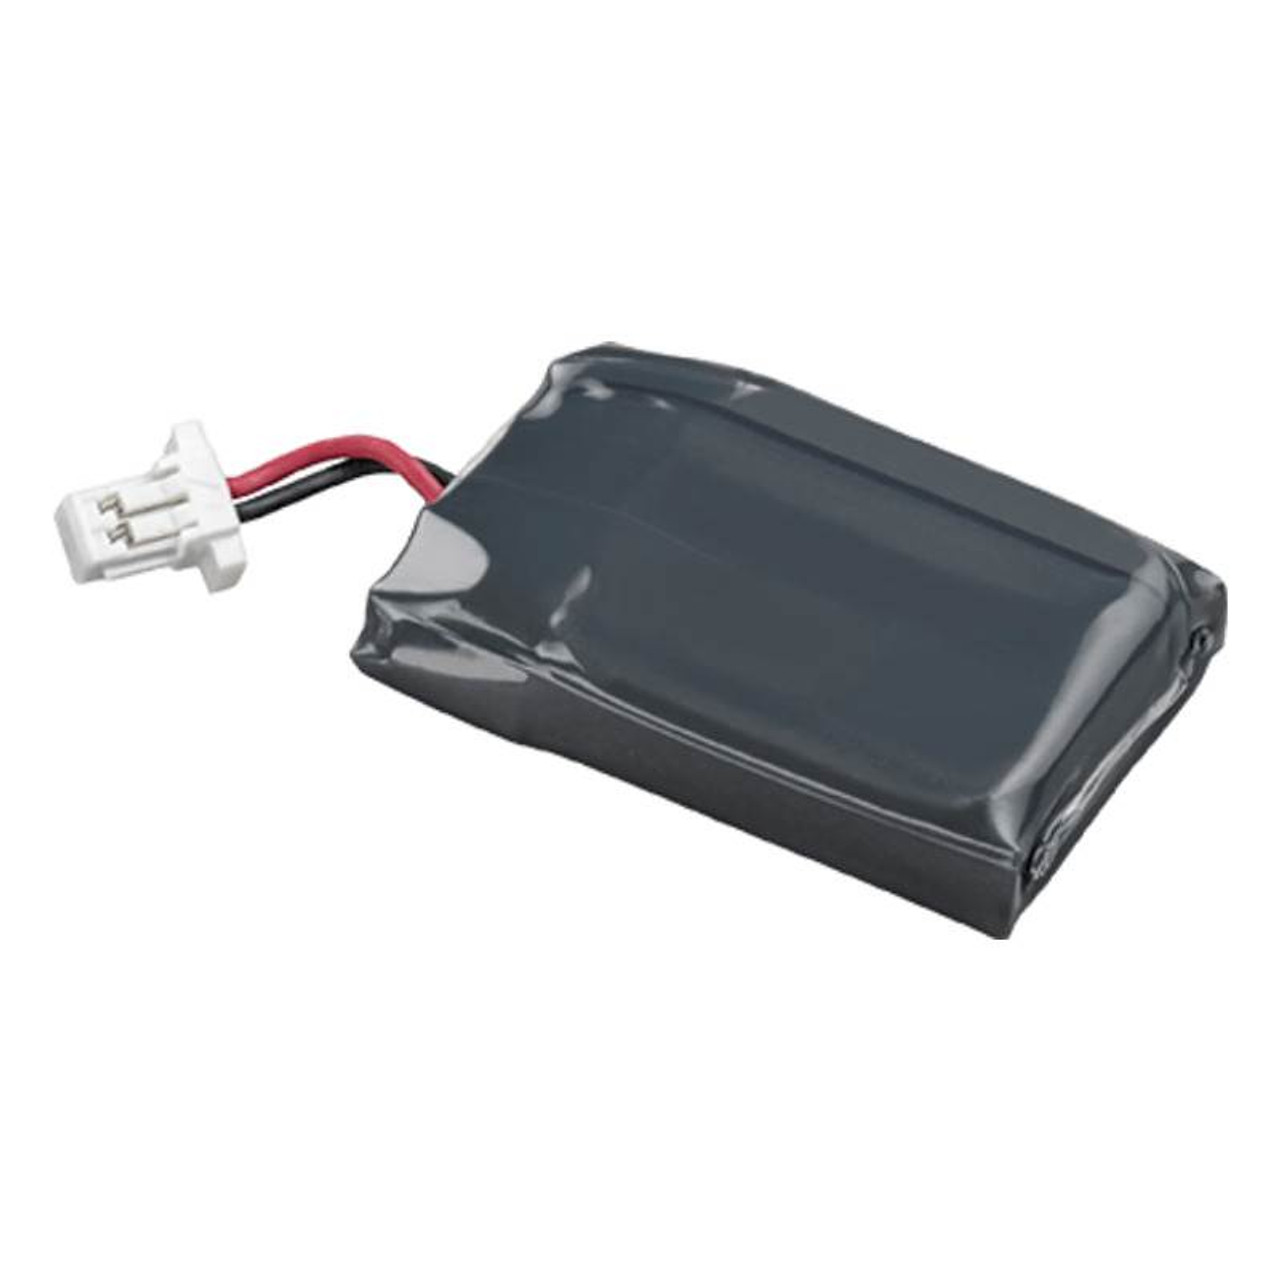 Image for Plantronics CS540 Spare Battery CX Computer Superstore